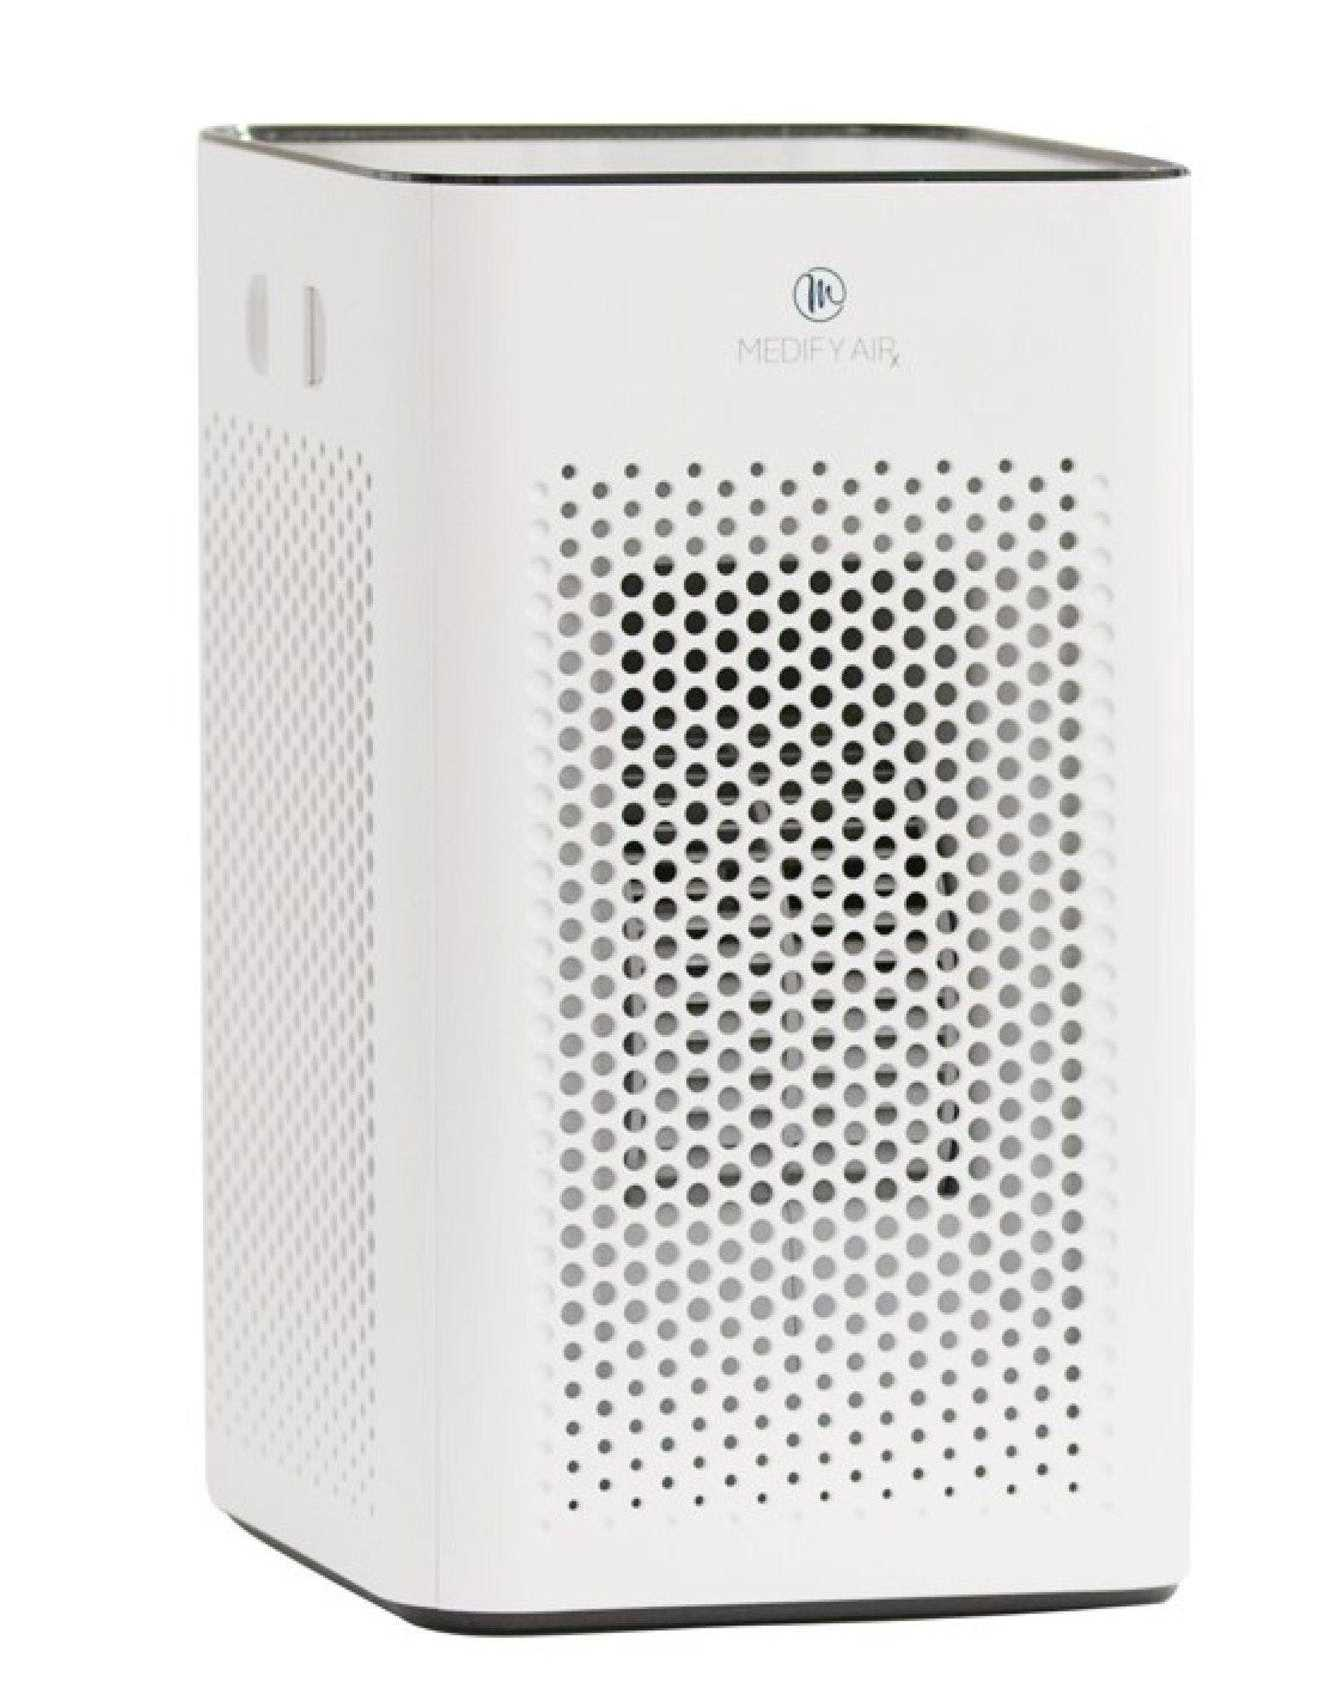 Medify Air Purifier Event at Rite Aid